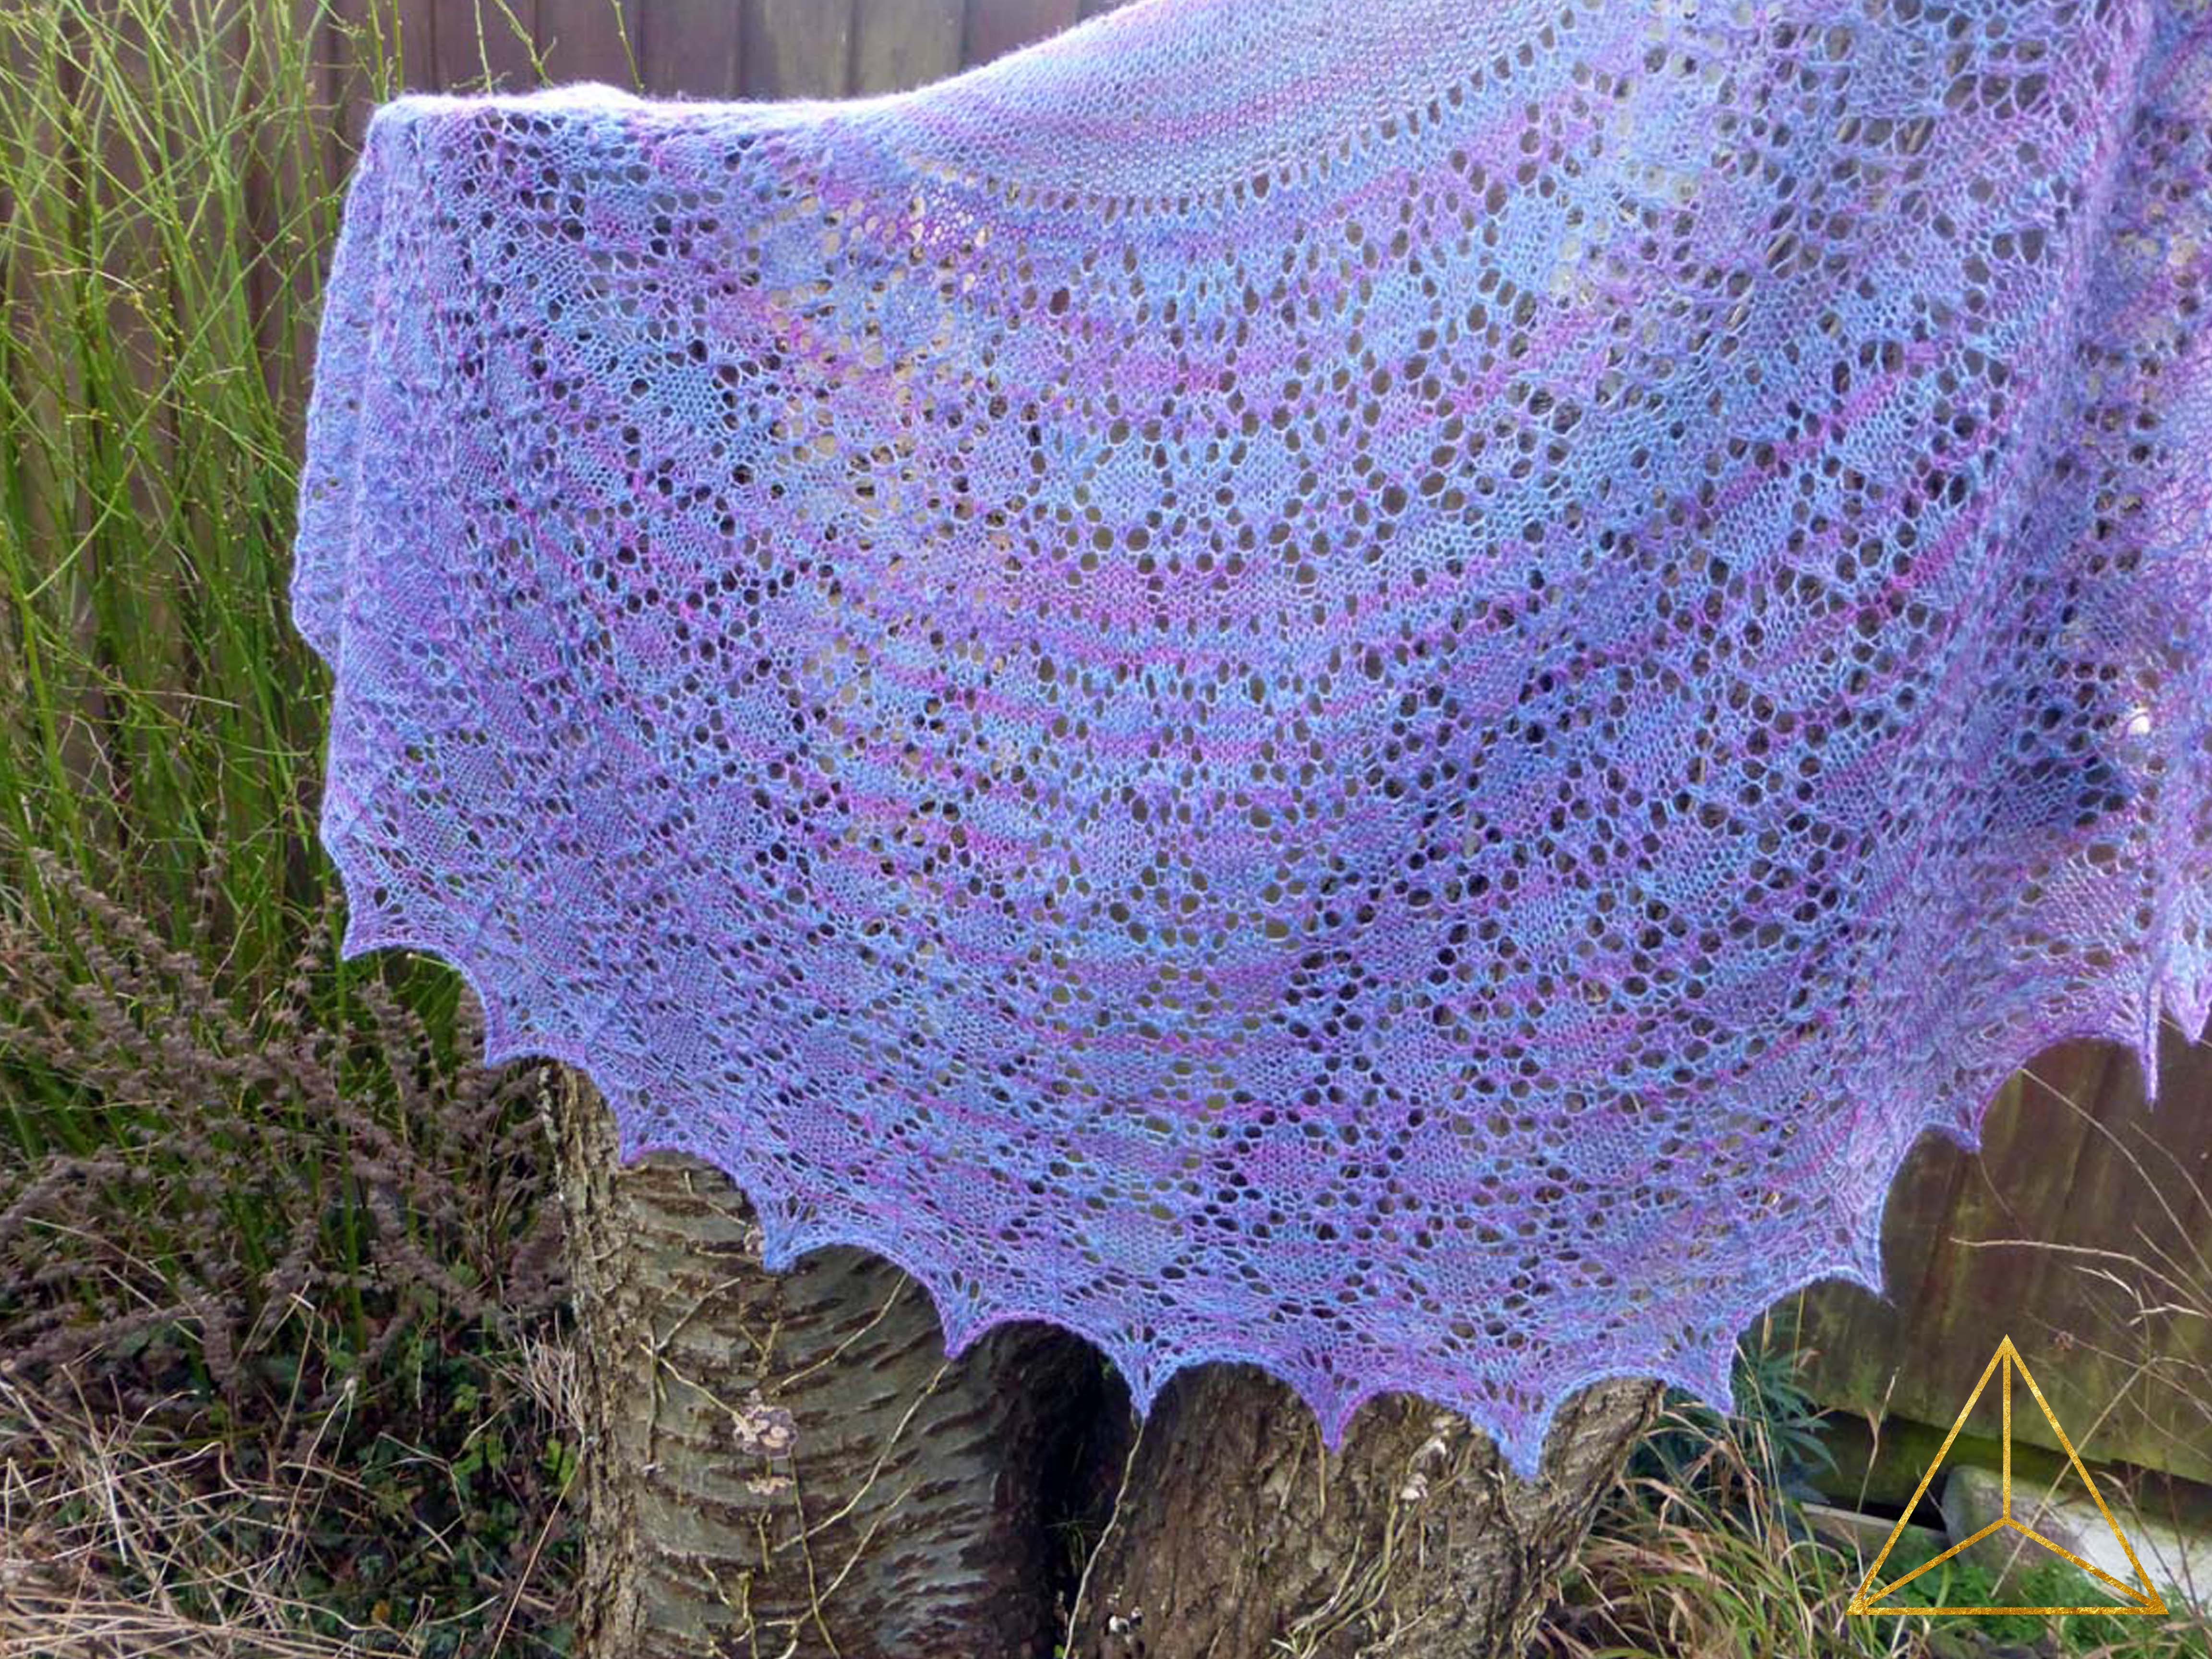 A Lost Edging to the Candyfloss Shawl | www.thefatedknitter.co.uk